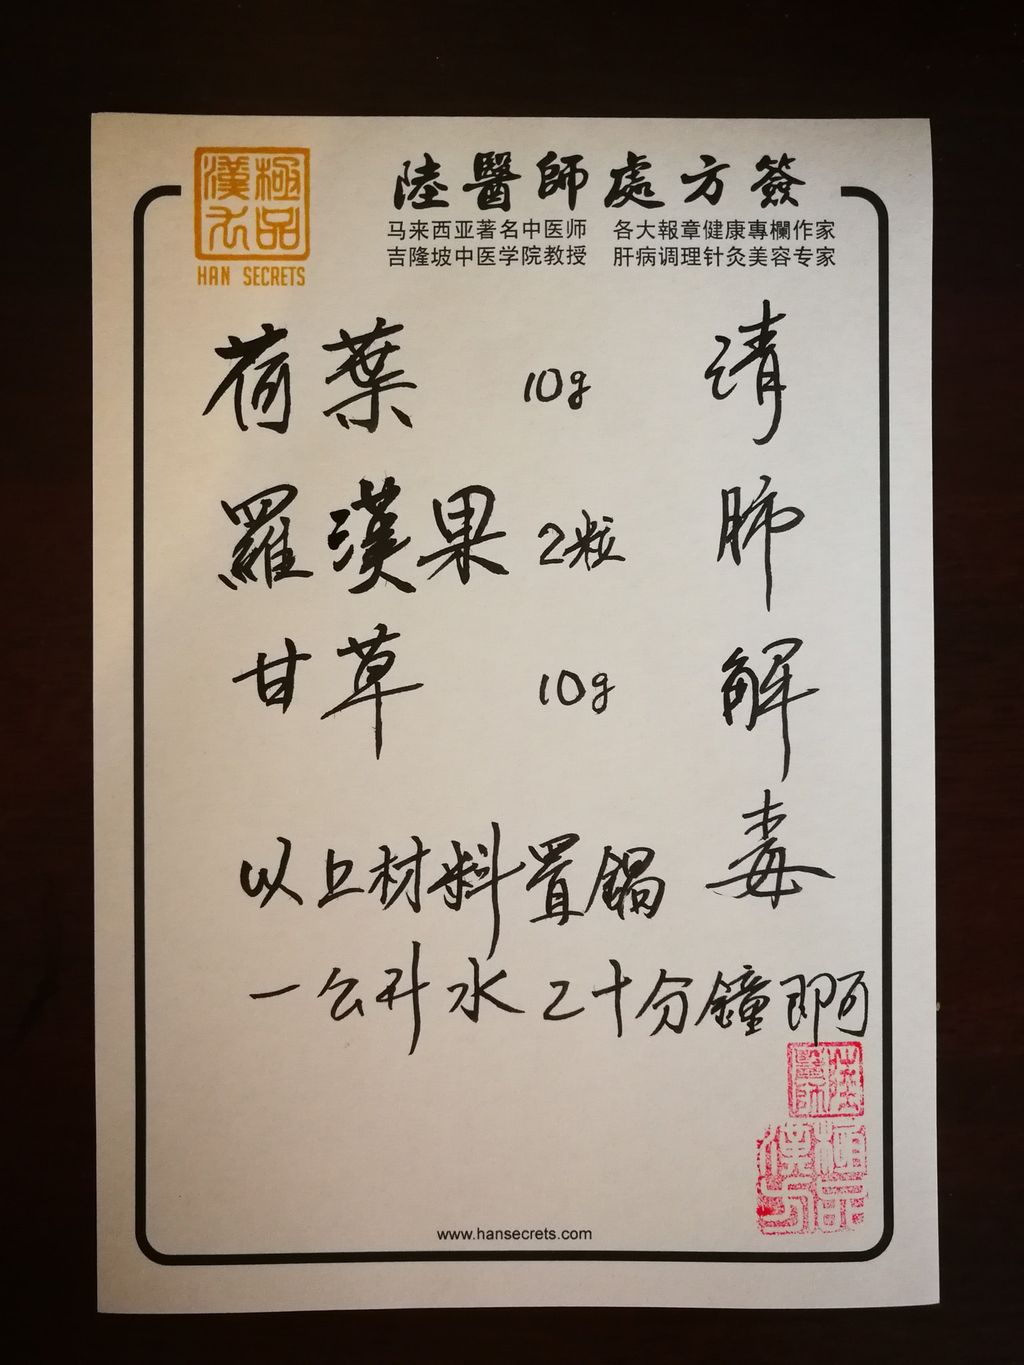 Recipe for Cleaning the Lung 【陸醫師給你好涼茶】荷葉清肺茶